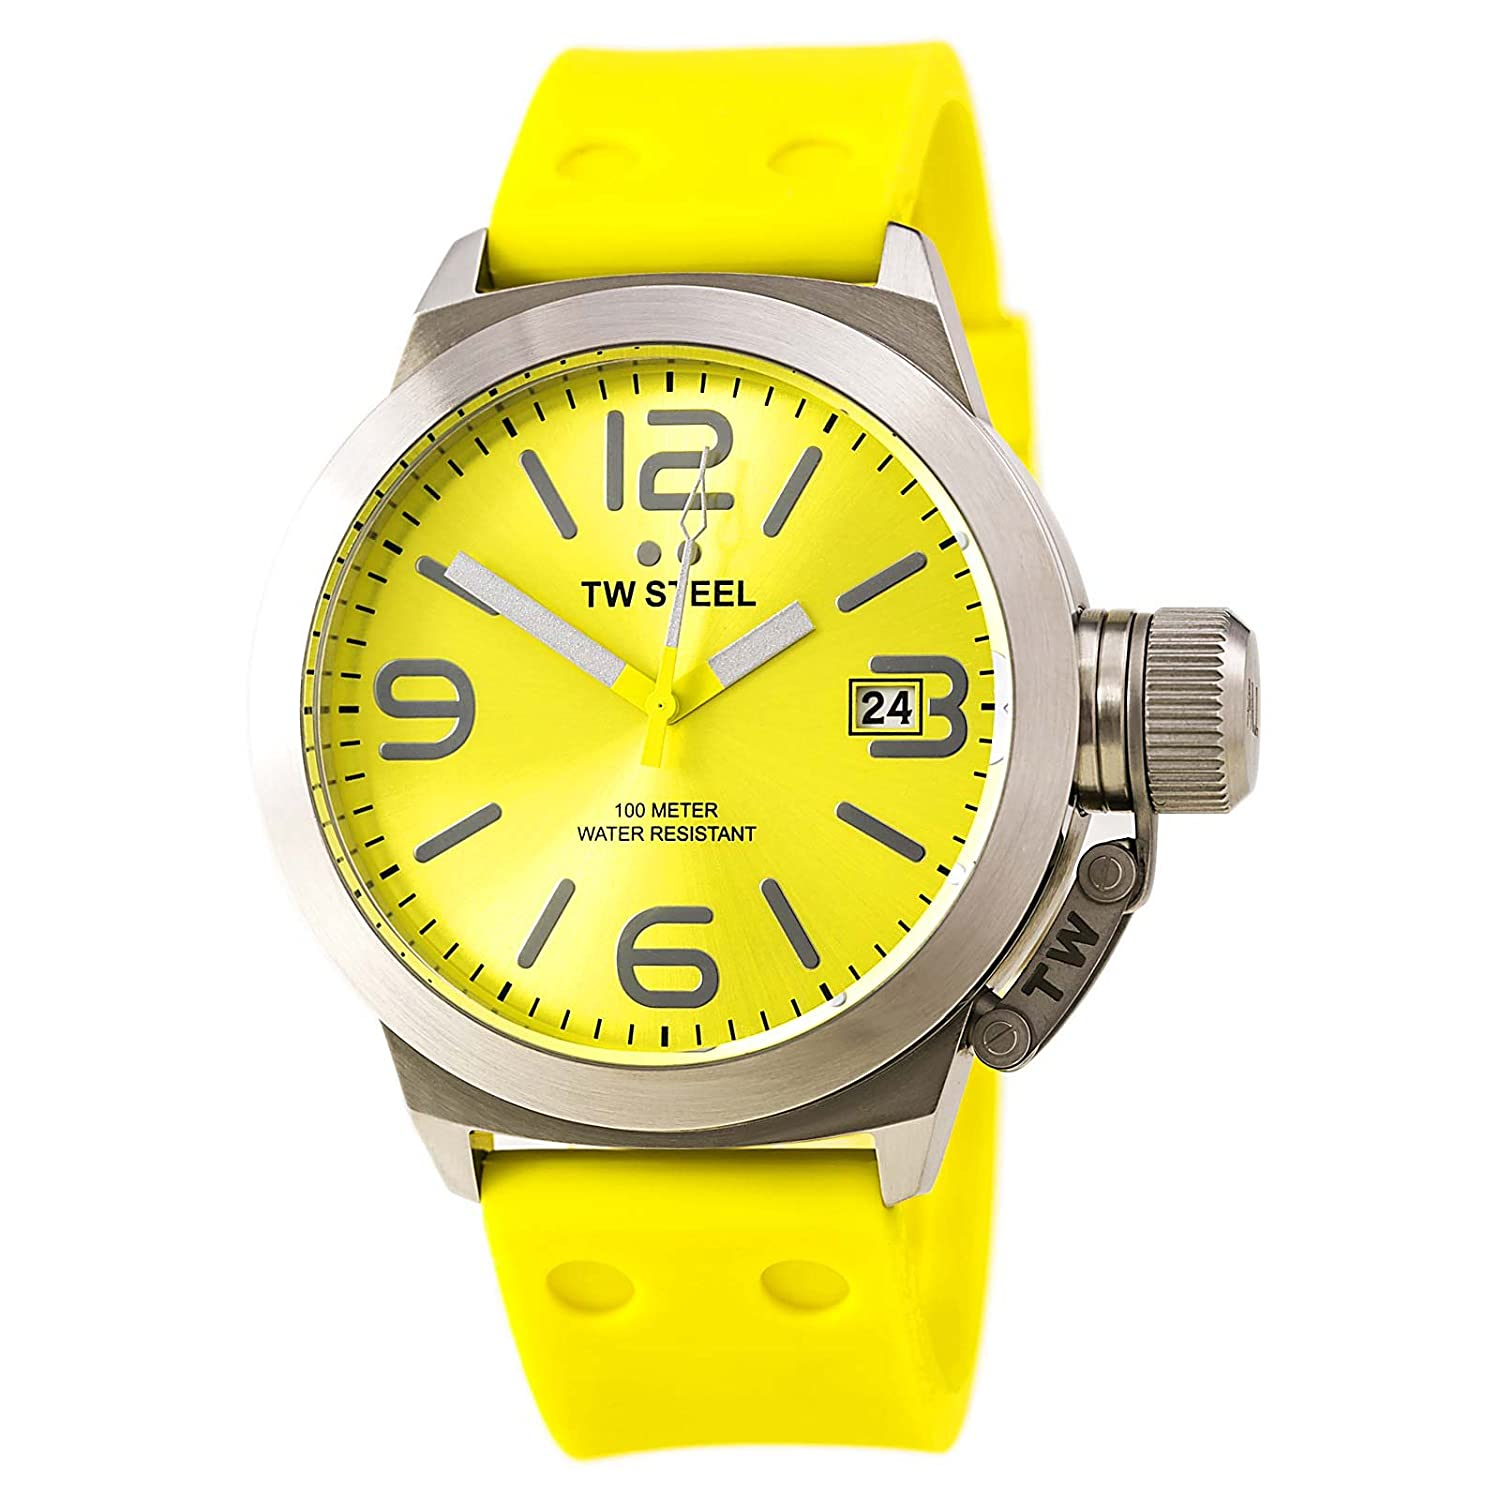 yellow tiger prince img watches hydronaut tudor ref steel dial date stainless